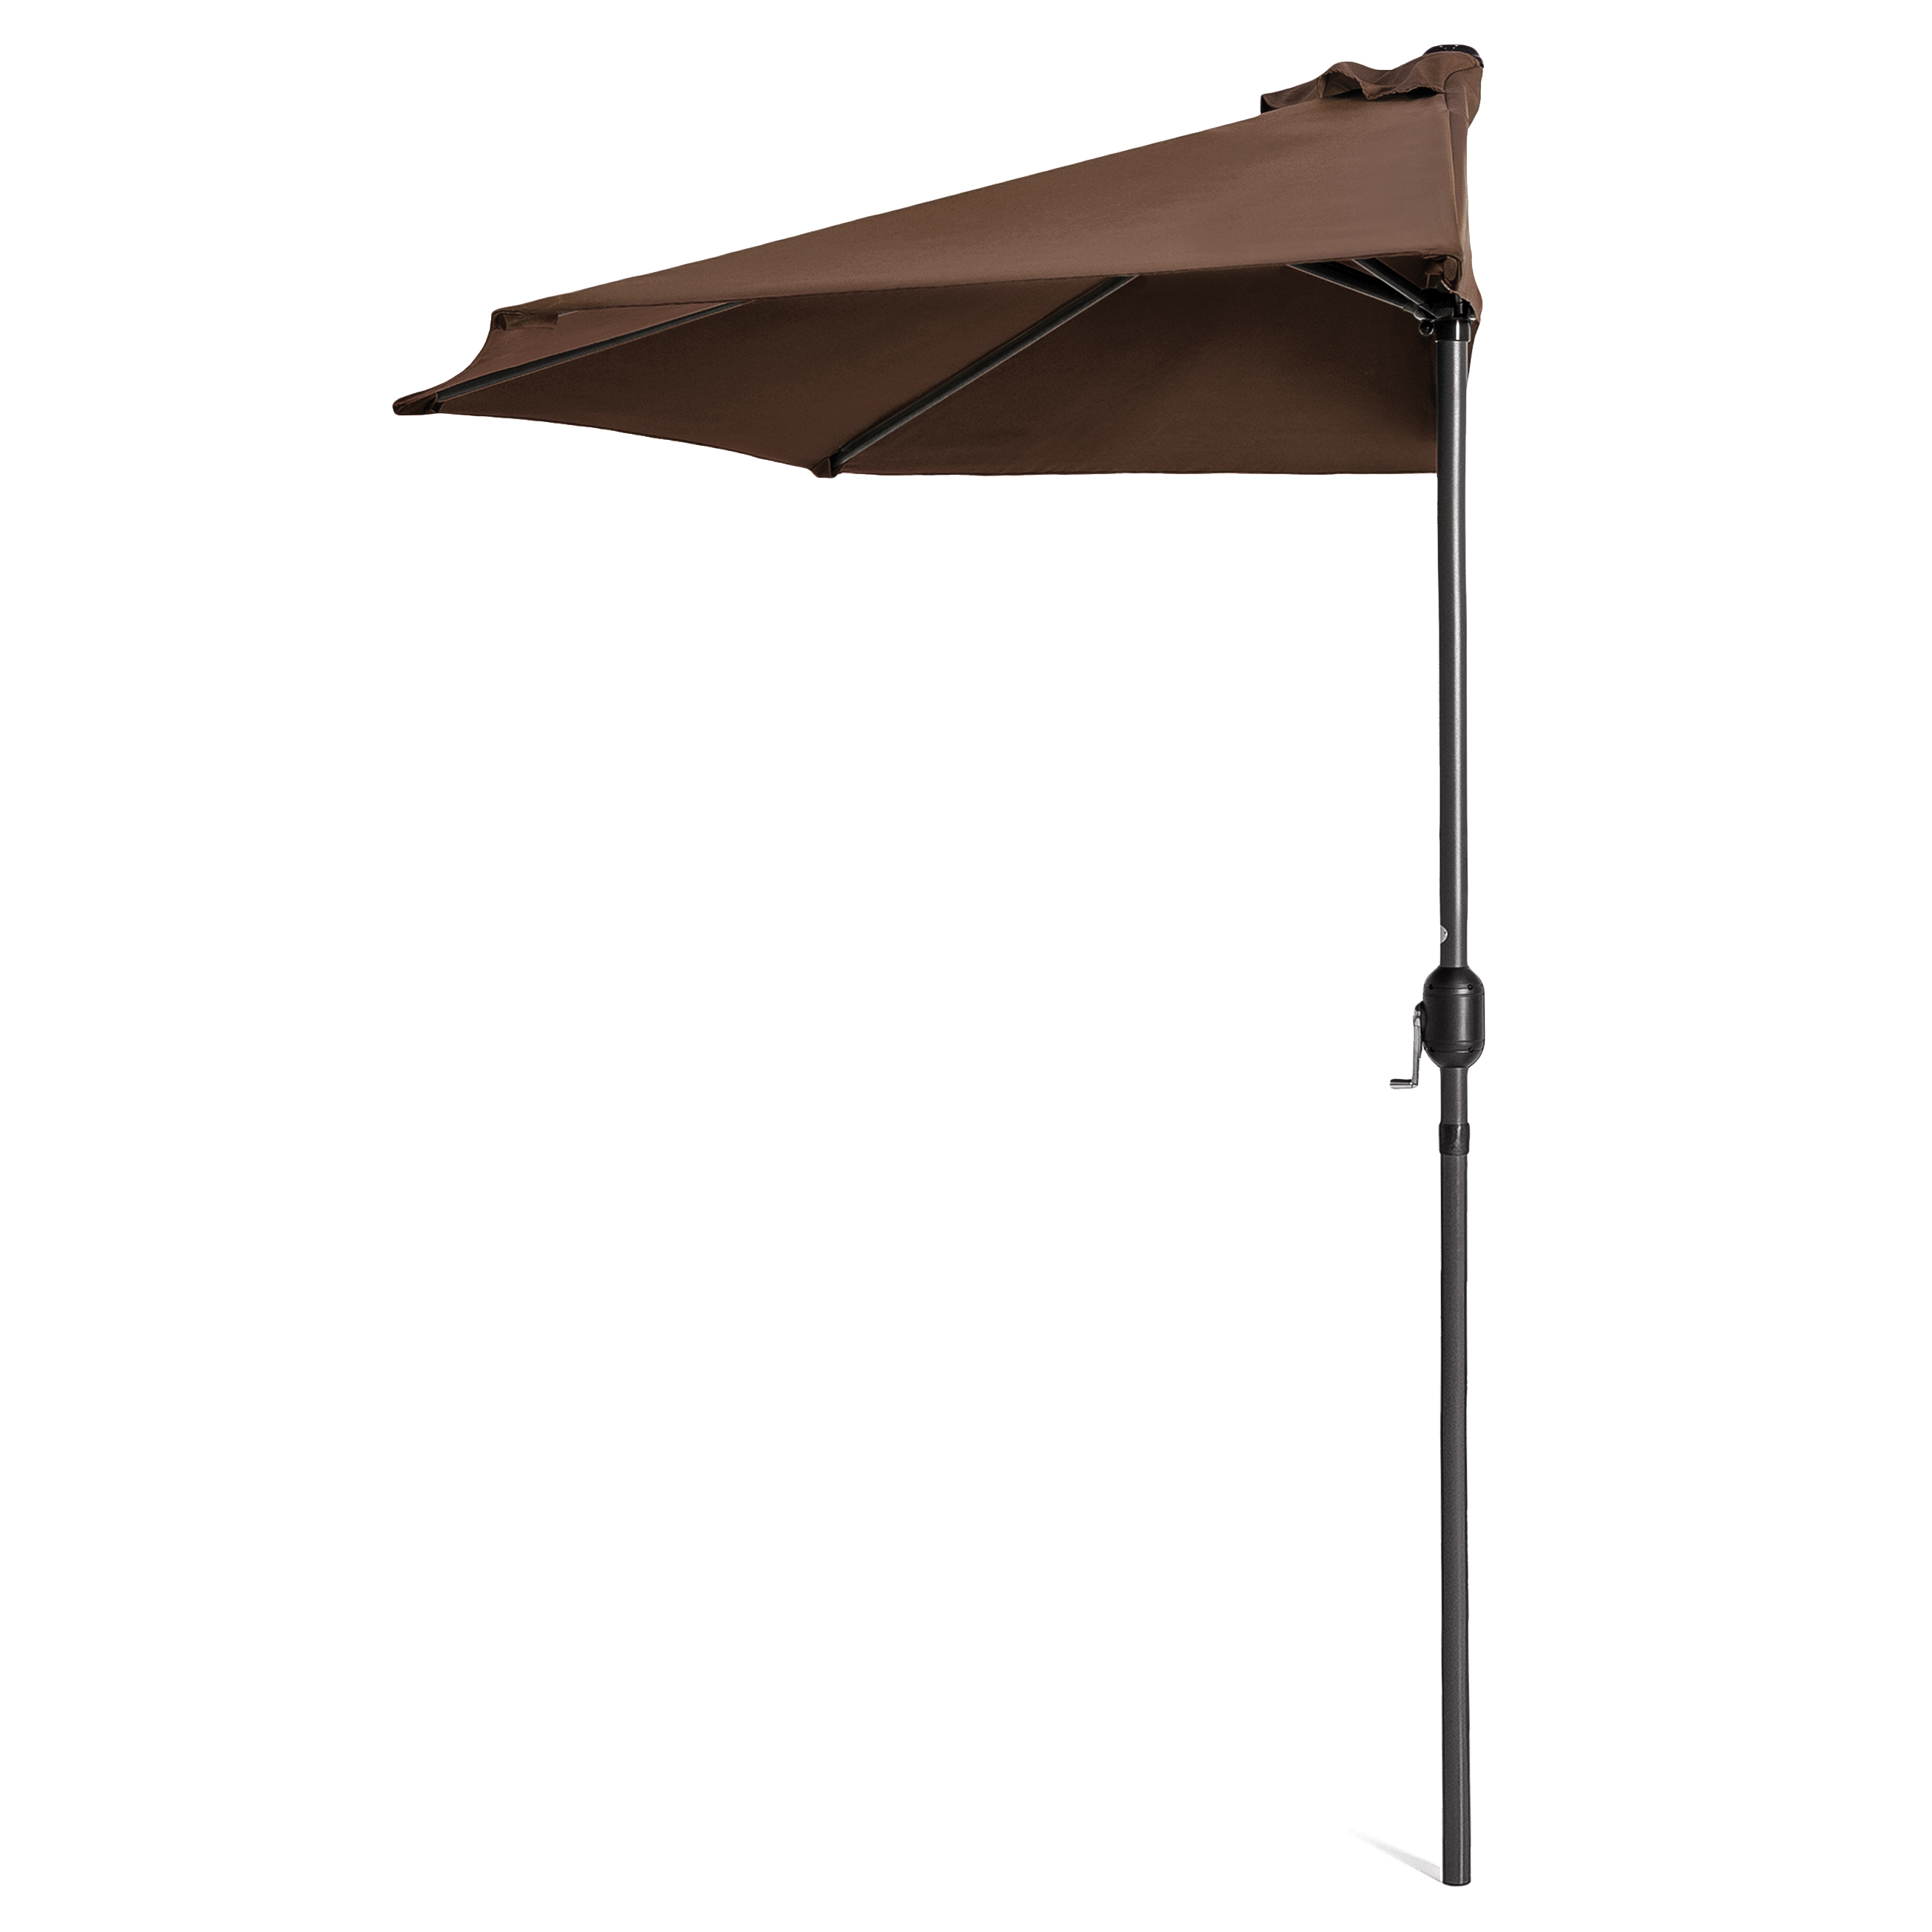 BCP-9ft-Half-Patio-Umbrella-w-Crank-Steel-Frame-UV-amp-Water-Resistant-Fabric thumbnail 14